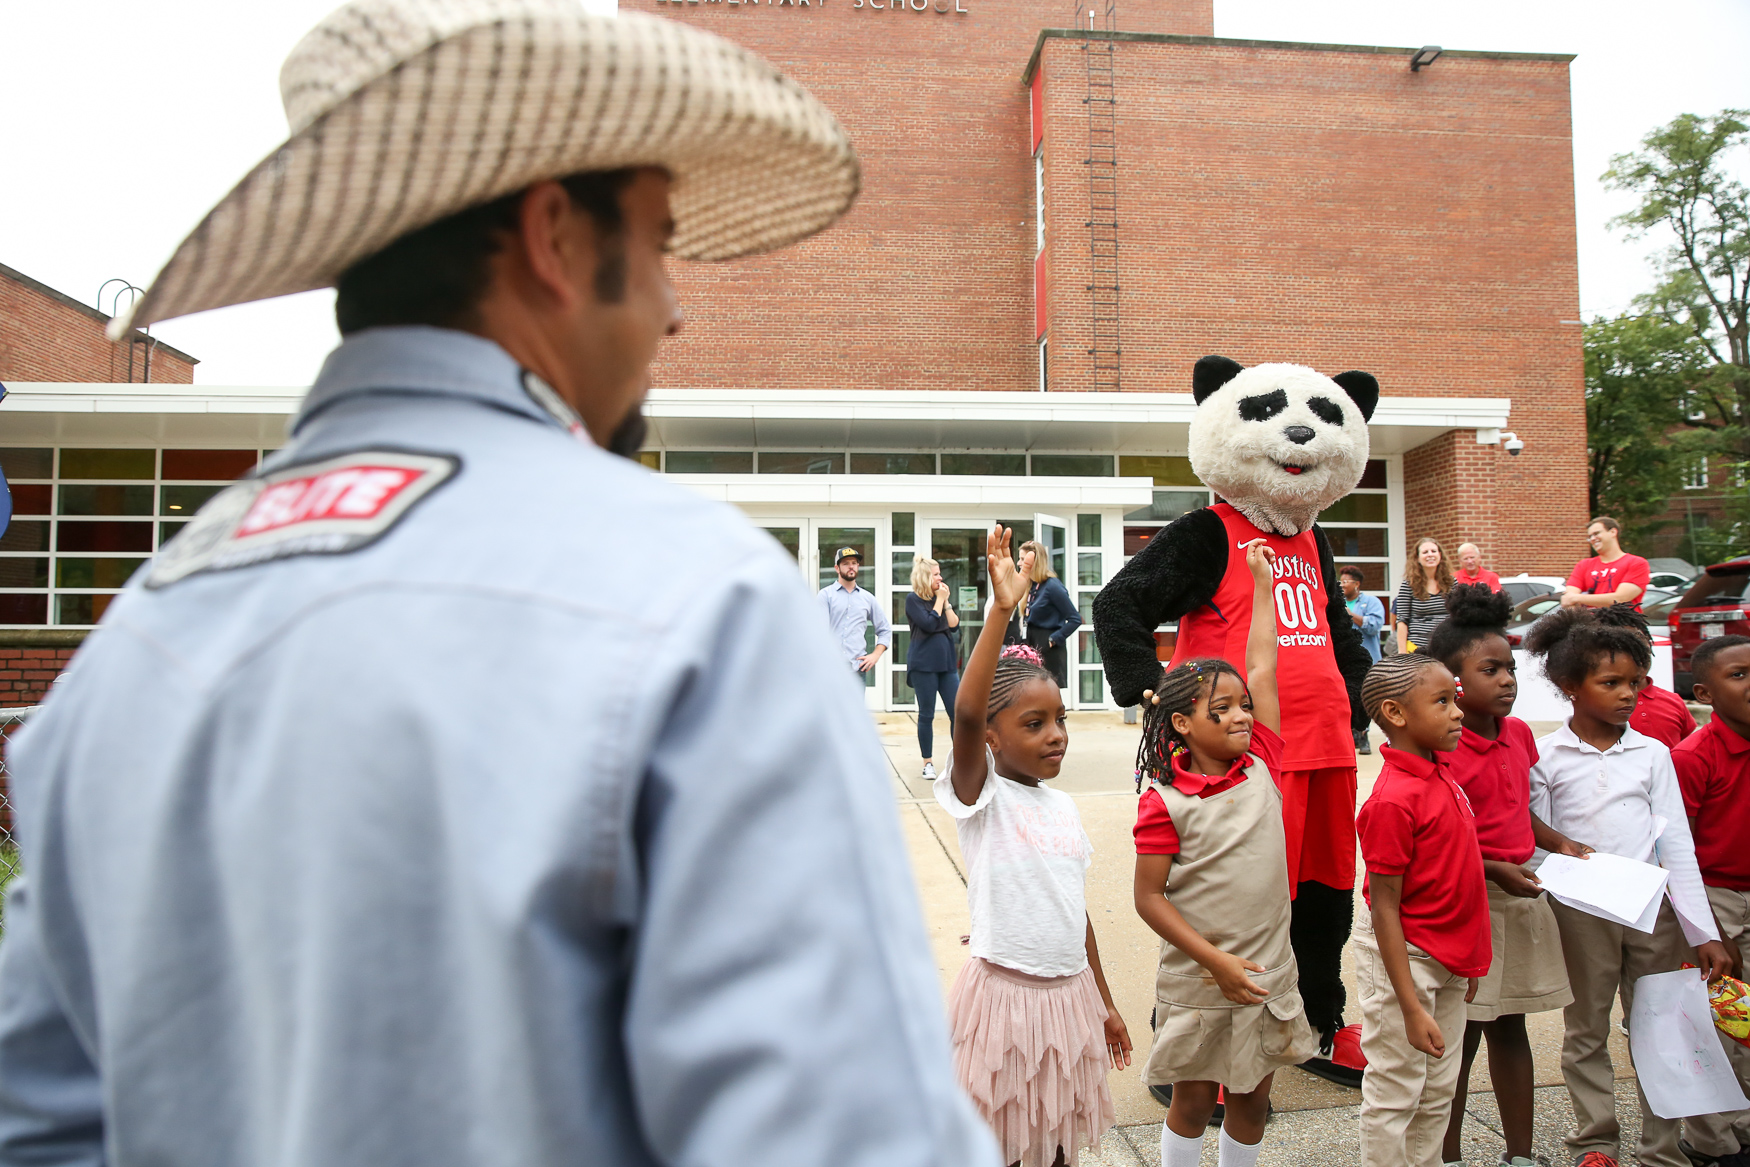 Kids at{ }Hendley Elementary School had some very special guests today.{ }Bull rider{ }Matt Triplett, Washington Mystics mascot Pax the Panda and several cowboys stopped by Hendley Elementary to give them some lessons about bull riding and deliver a gift - $2,000{ }{ }to the MSE Foundation so that students can have access to computers. The team stopped in Anacoastia{ }ahead of the{ }PBR (Professional Bull Riders) Elite tour stop in Fairfax, VA, this weekend. The main attraction for the kids wasn't the money or the cowboys though - they couldn't keep their eyes off of Million Dollar Baby, a bull set to compete in the PBR Elite Tour. (Amanda Andrade-Rhoades/DC Refined)